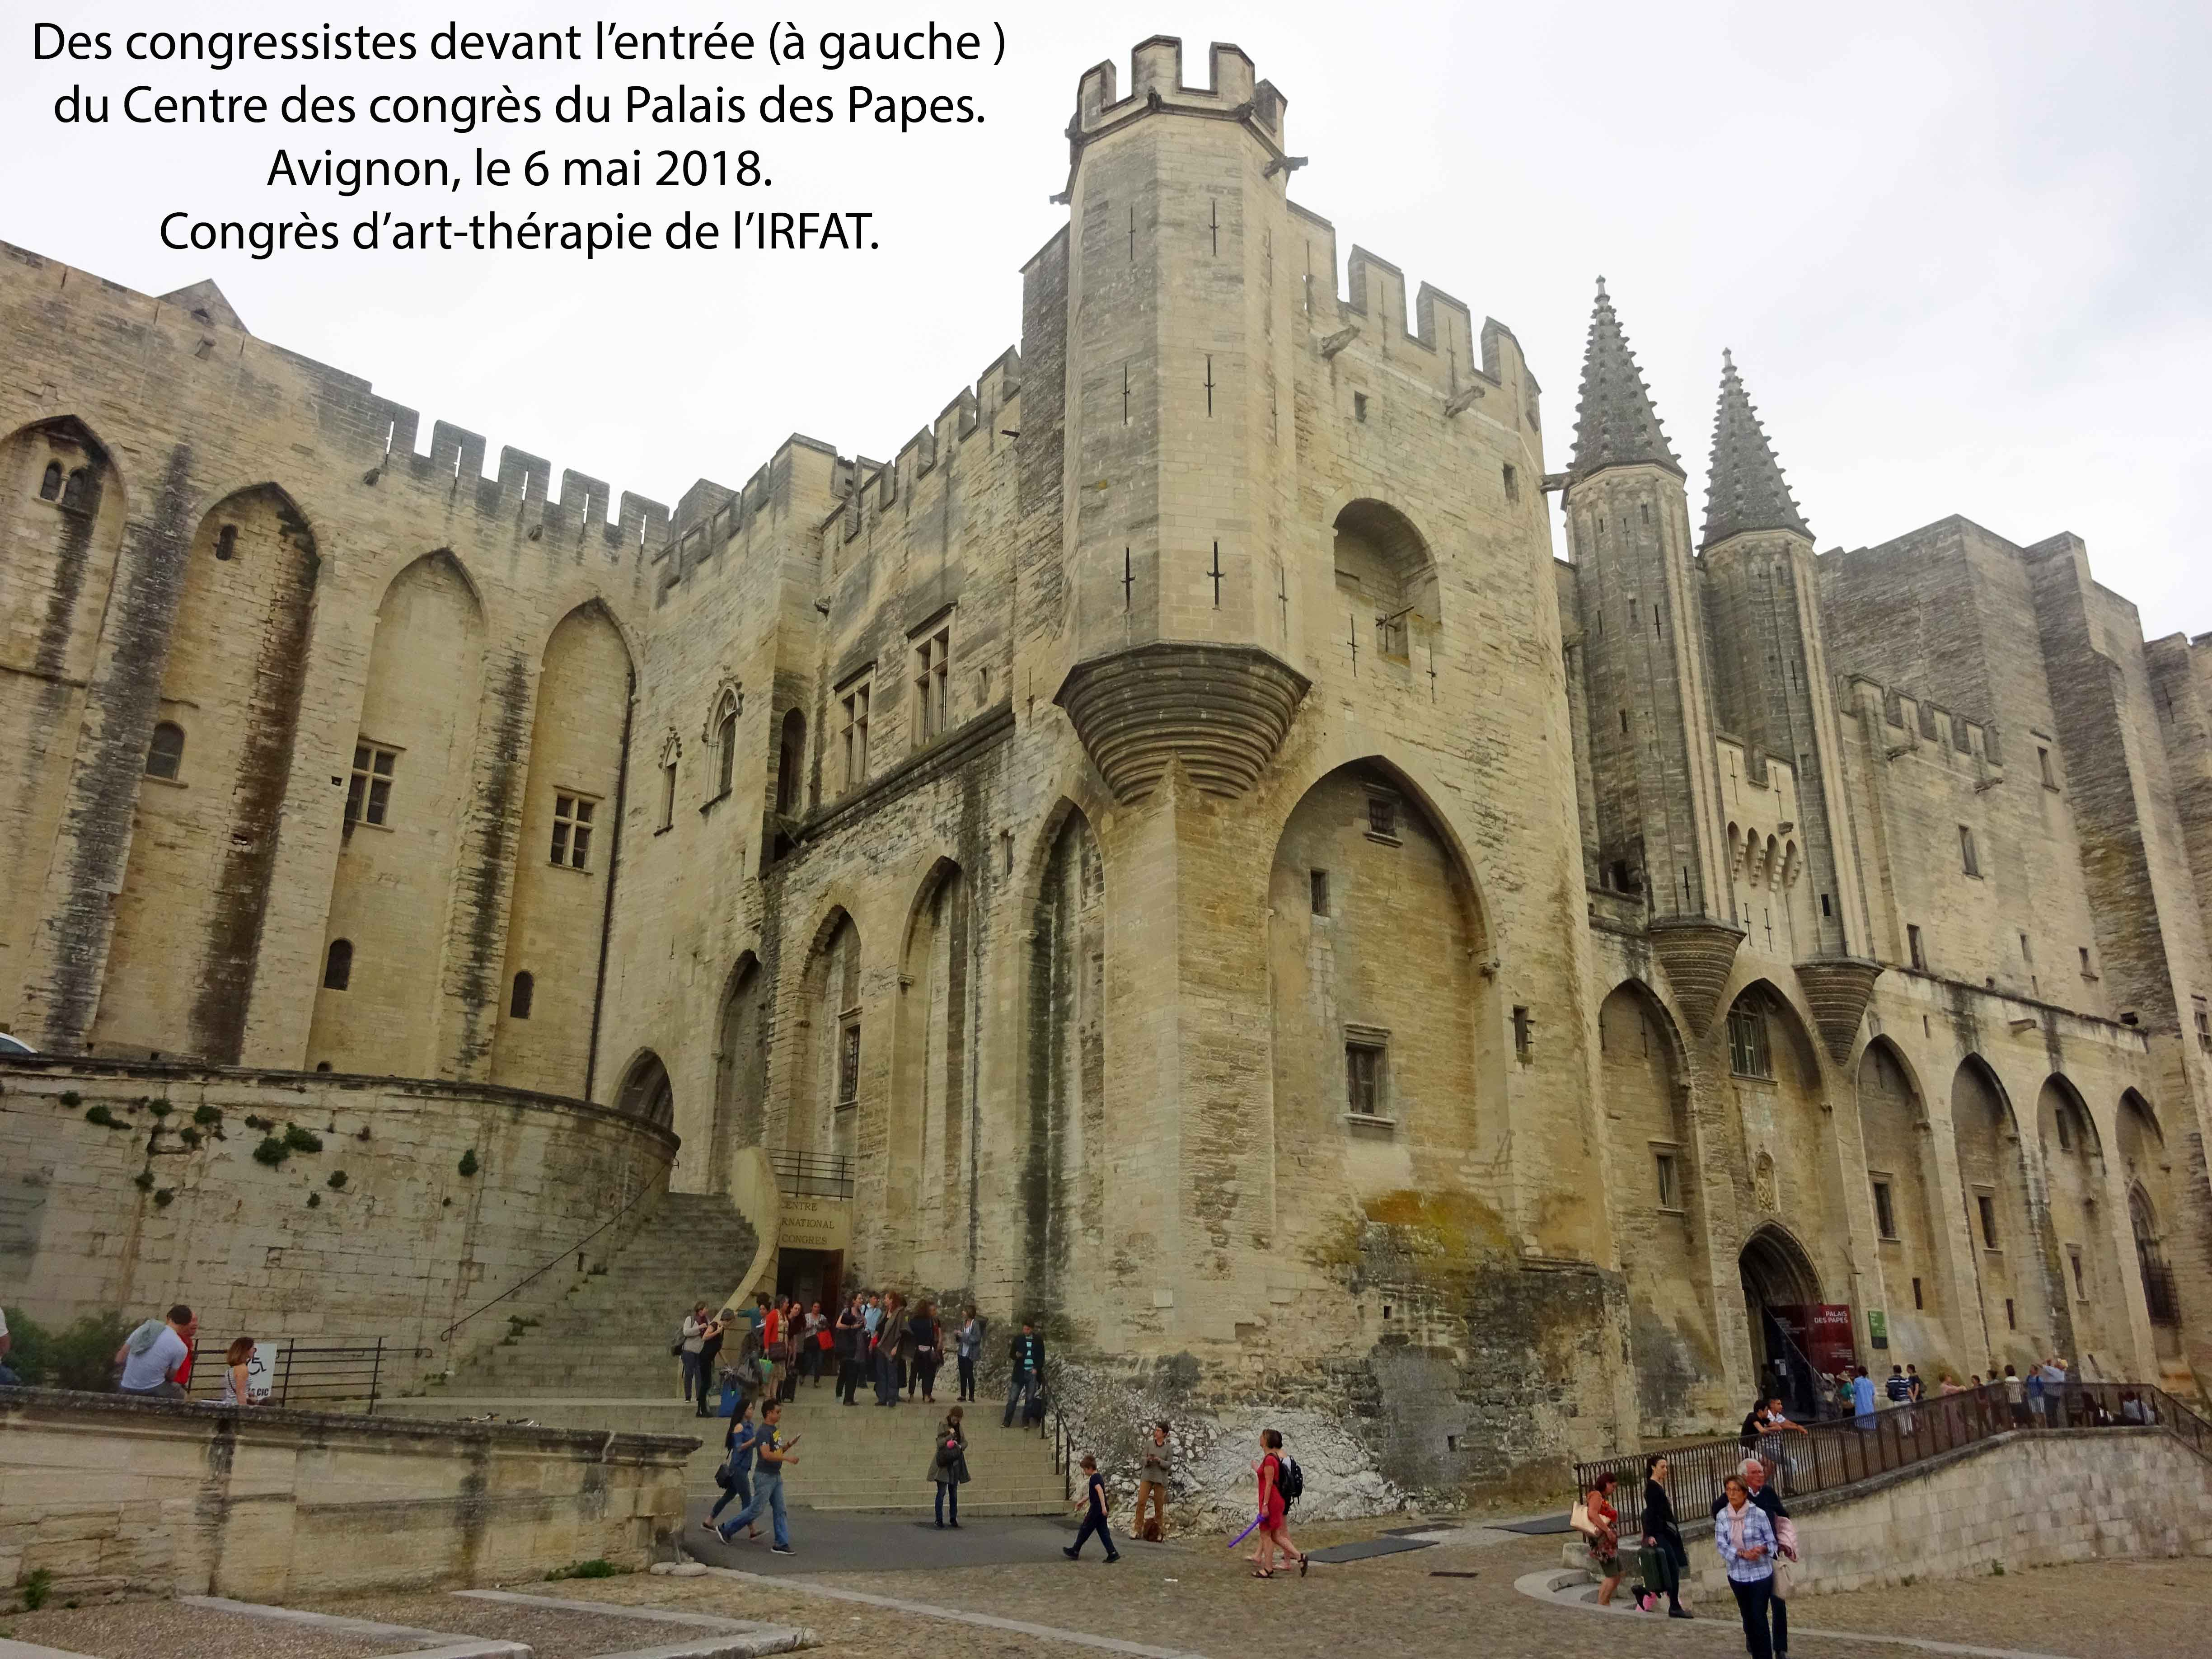 palais des papes d avignon les 5 et 6 mai 2018 psy cause au congr s d art th rapie de l irfat. Black Bedroom Furniture Sets. Home Design Ideas